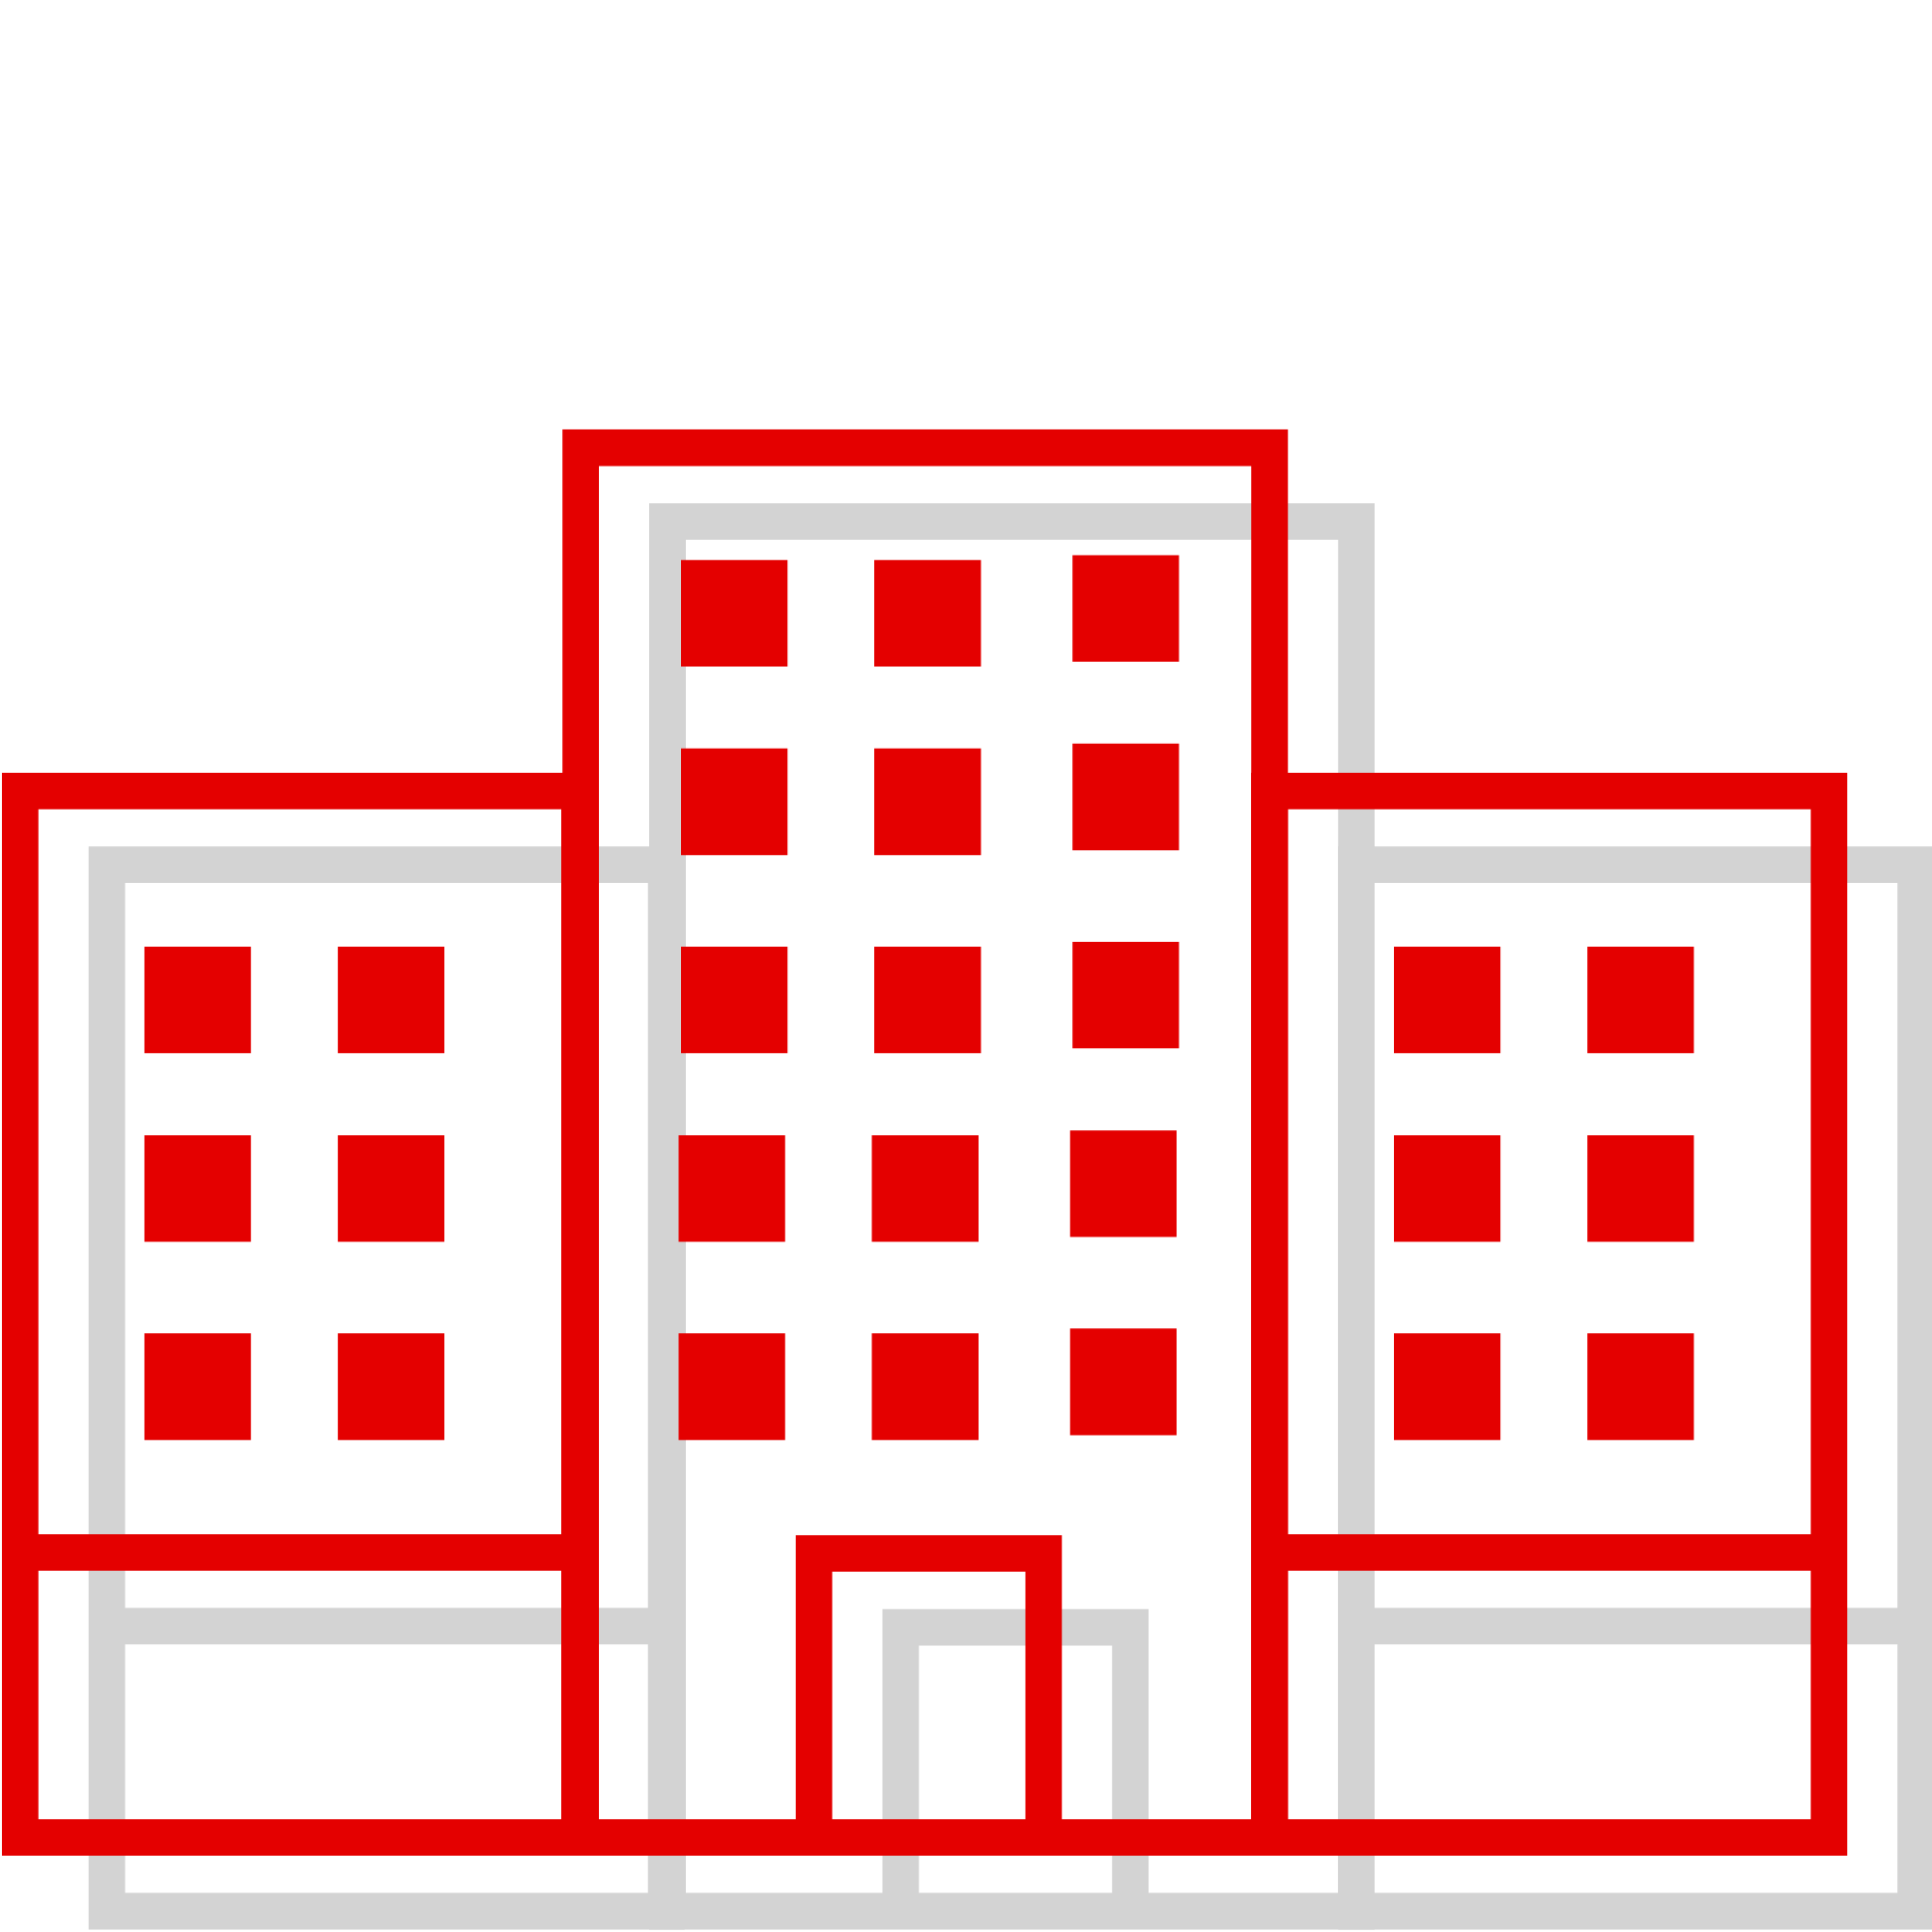 large company red icon